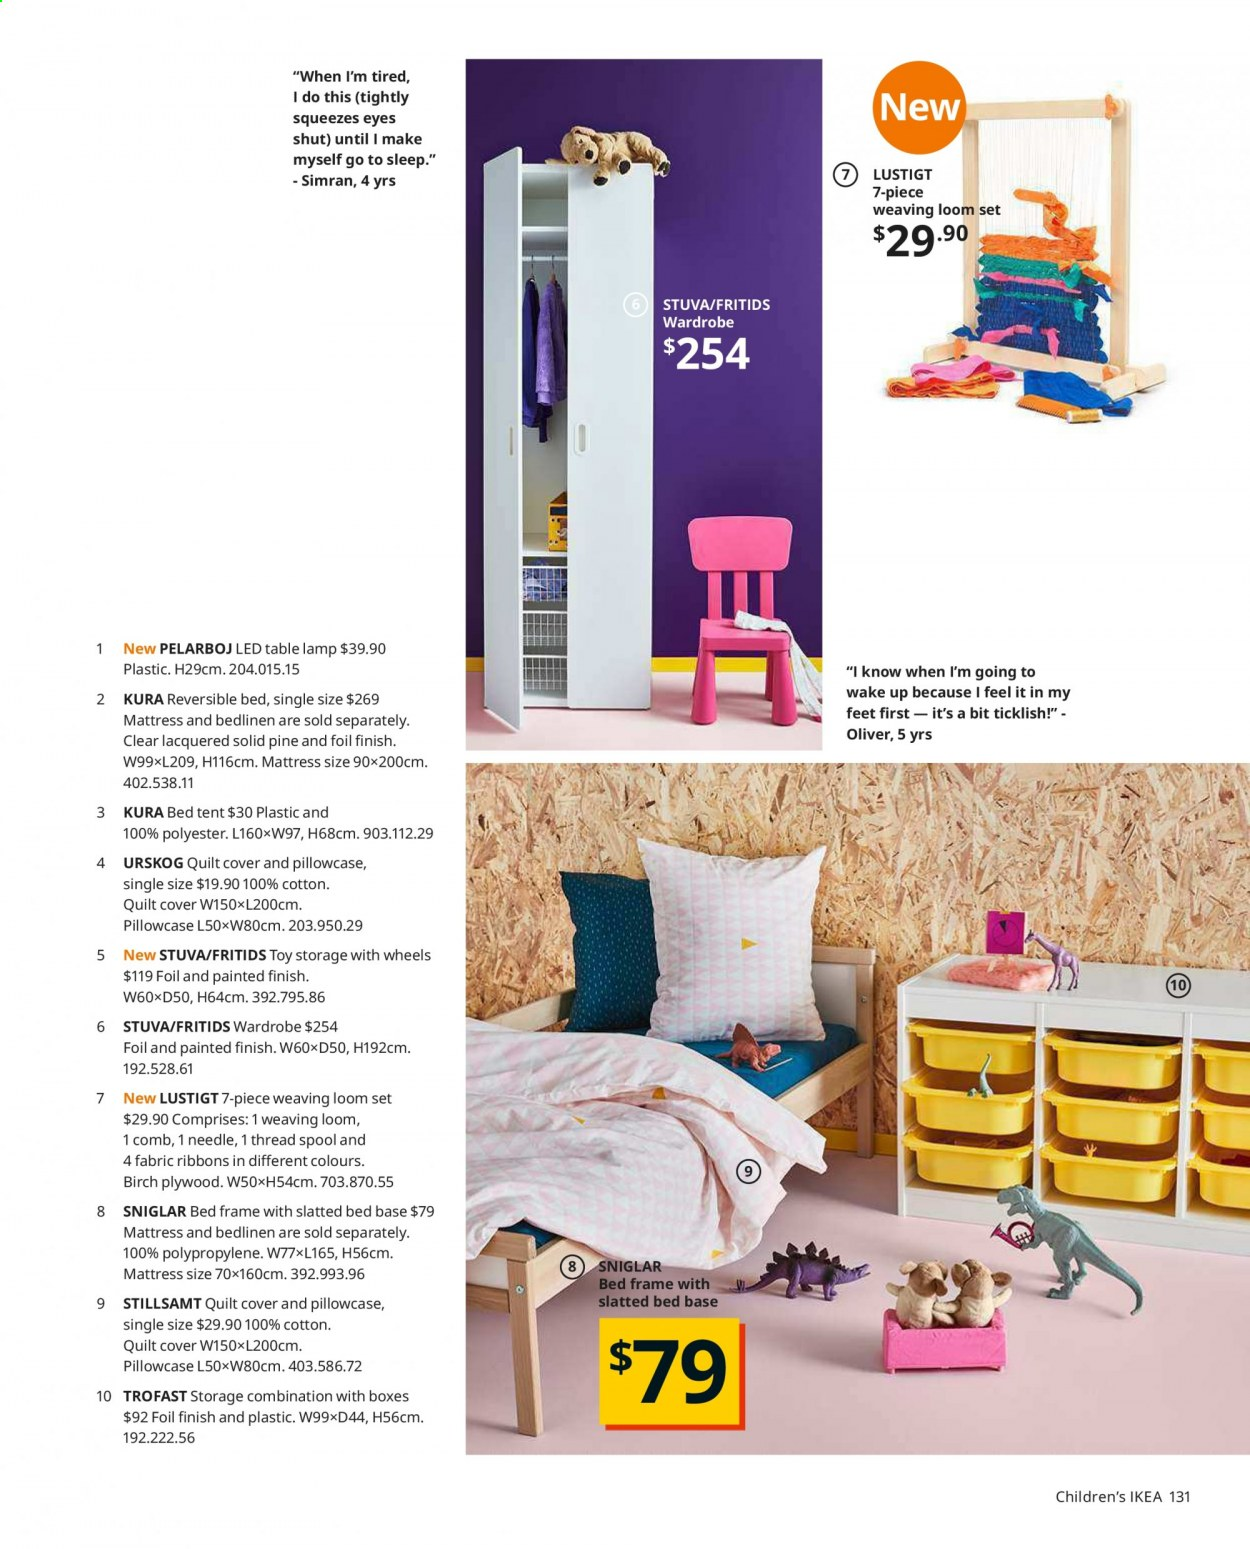 IKEA offer  - Sales products - always, bed, bed frame, box, lamp, mattress, table lamp, tent, wardrobe, pillowcases, plywood, quilt, toys. Page 131.